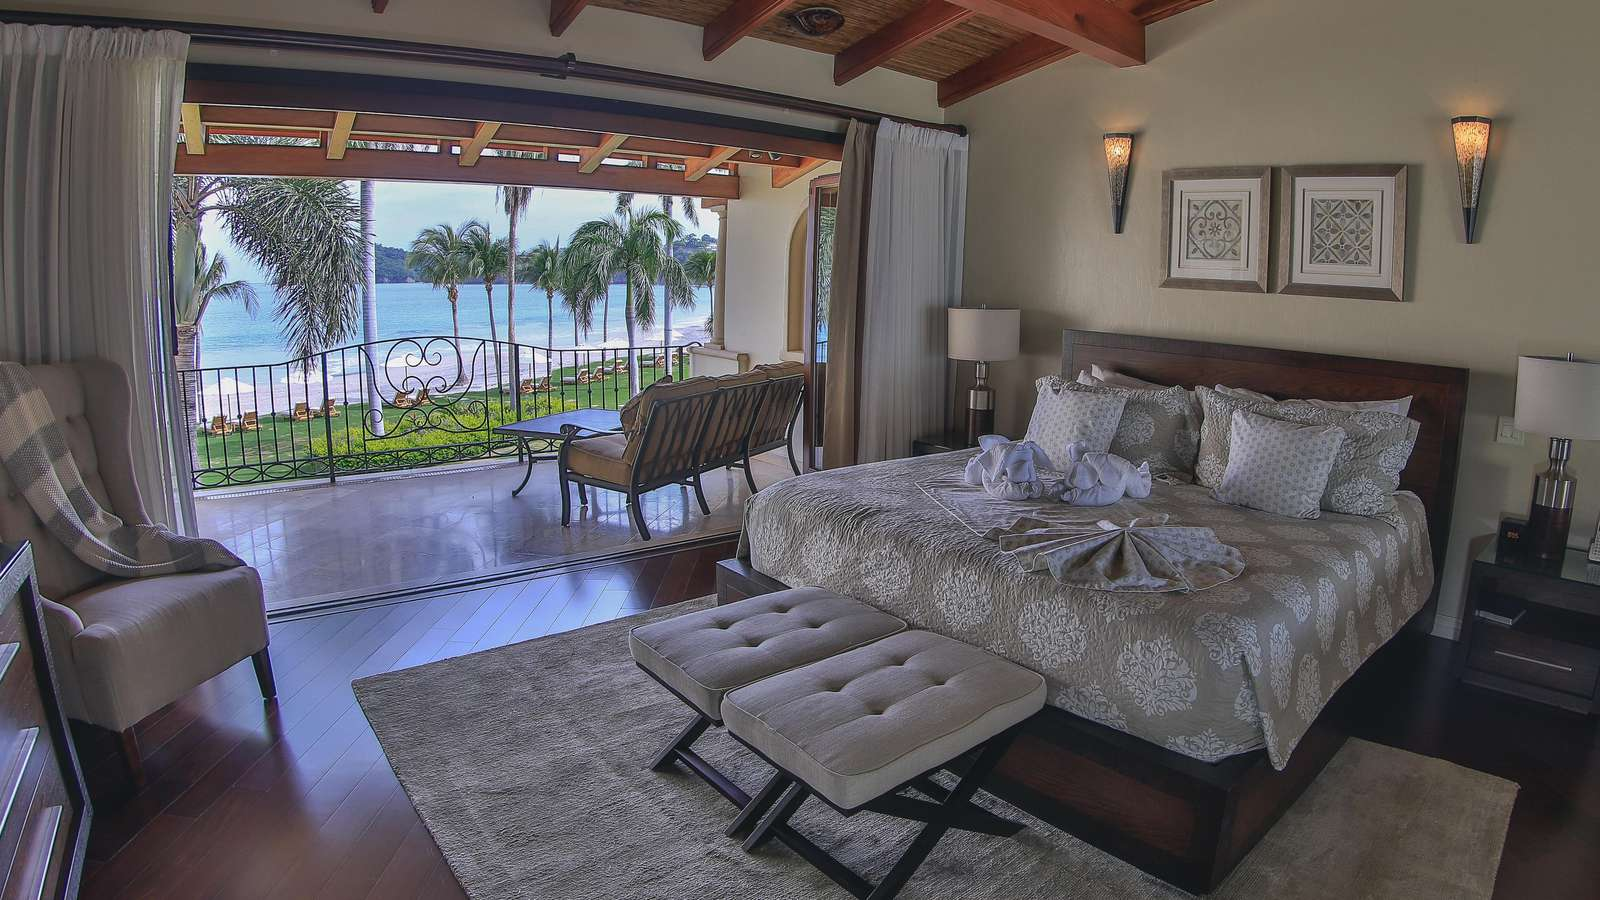 Master bedroom, king bed, ocean views, private bathroom, private balcony